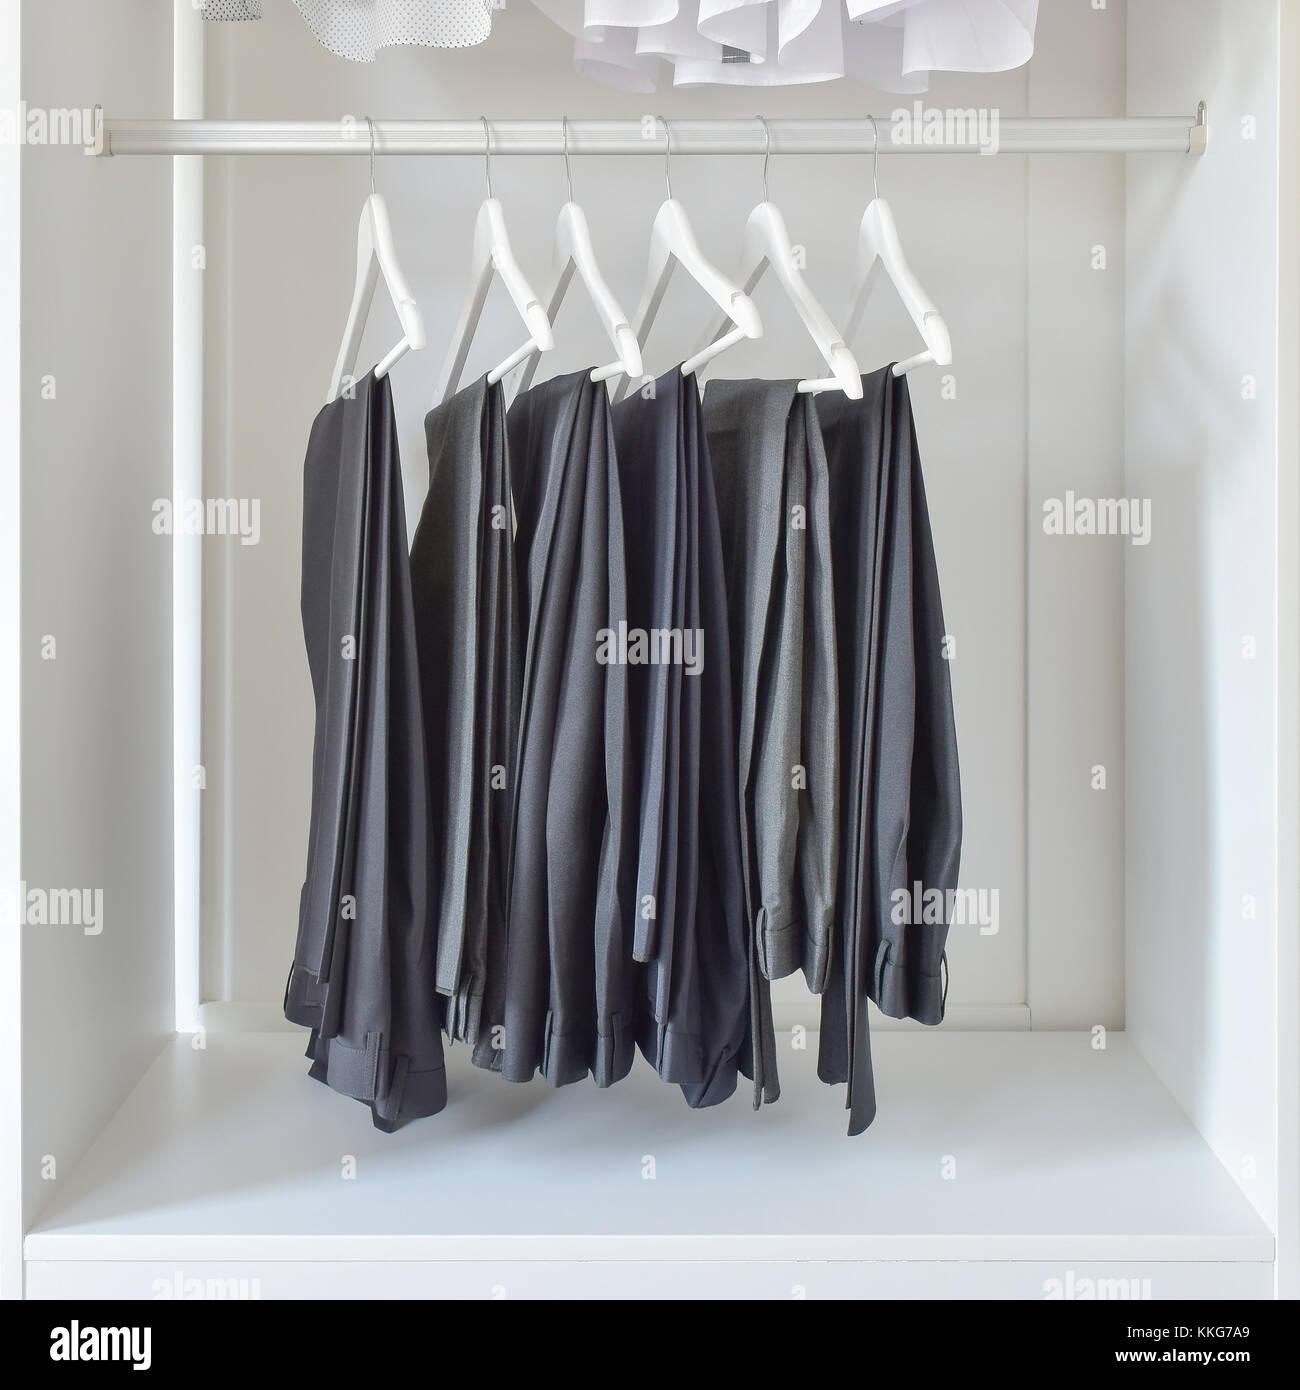 c7c253f152 row of black pants hanging in white wooden wardrobe Stock Photo ...